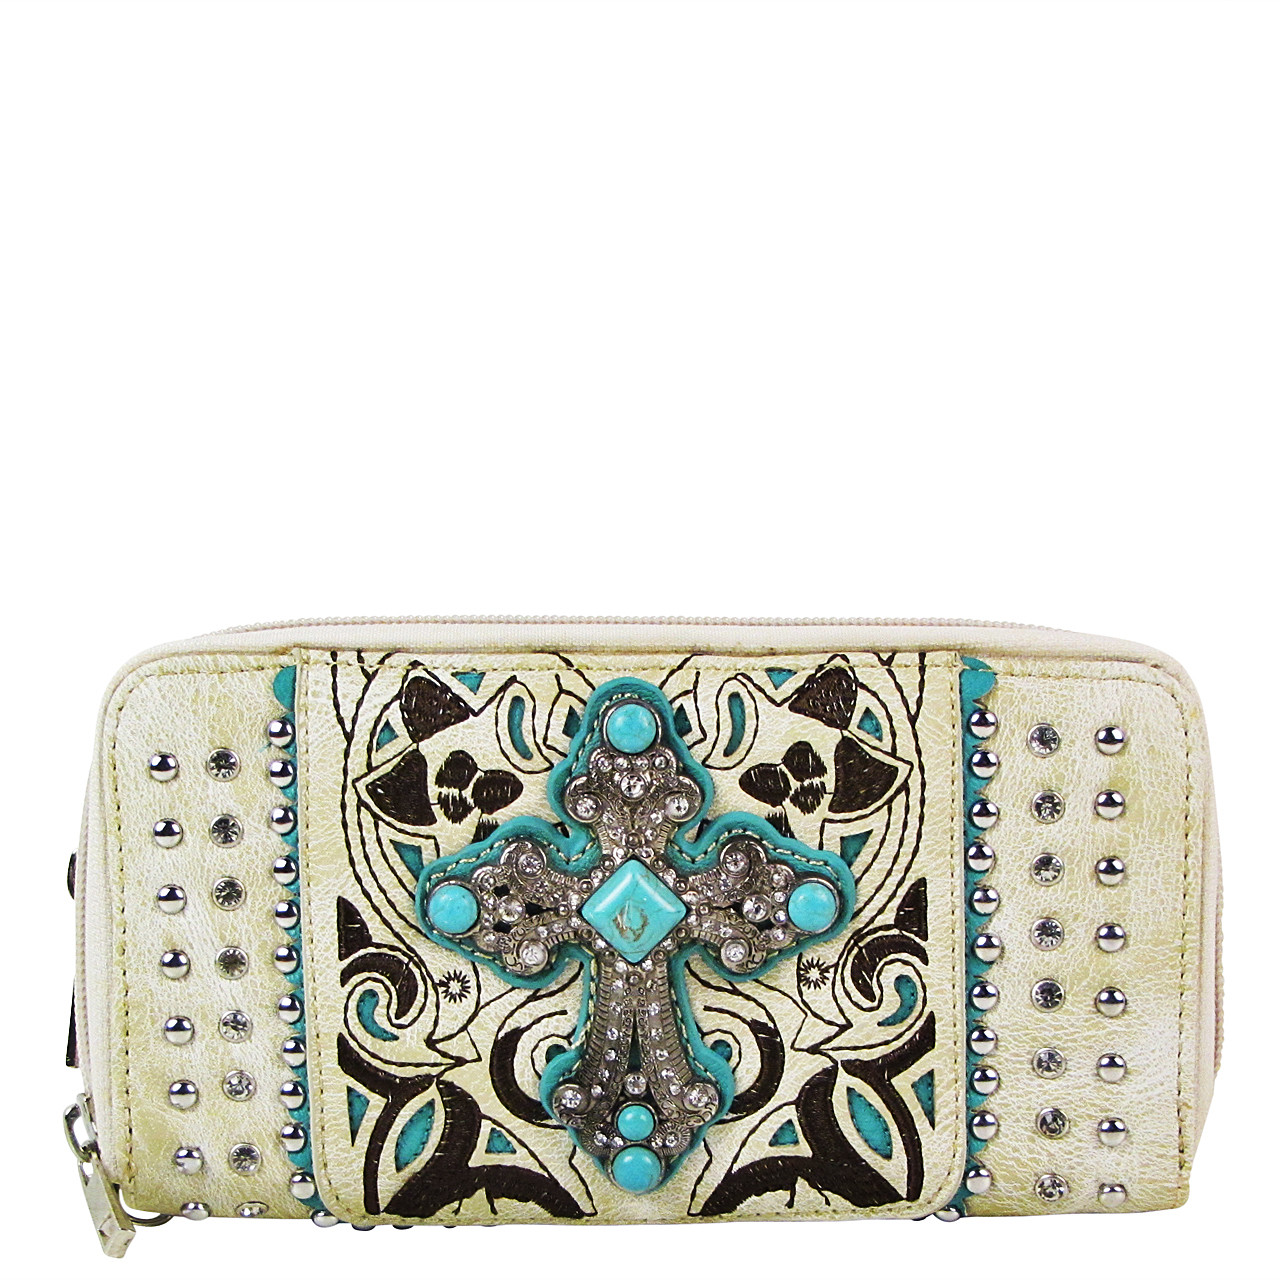 BEIGE STUDDED RHINESTONE CROSS LOOK ZIPPER WALLET CB3-0409BEI